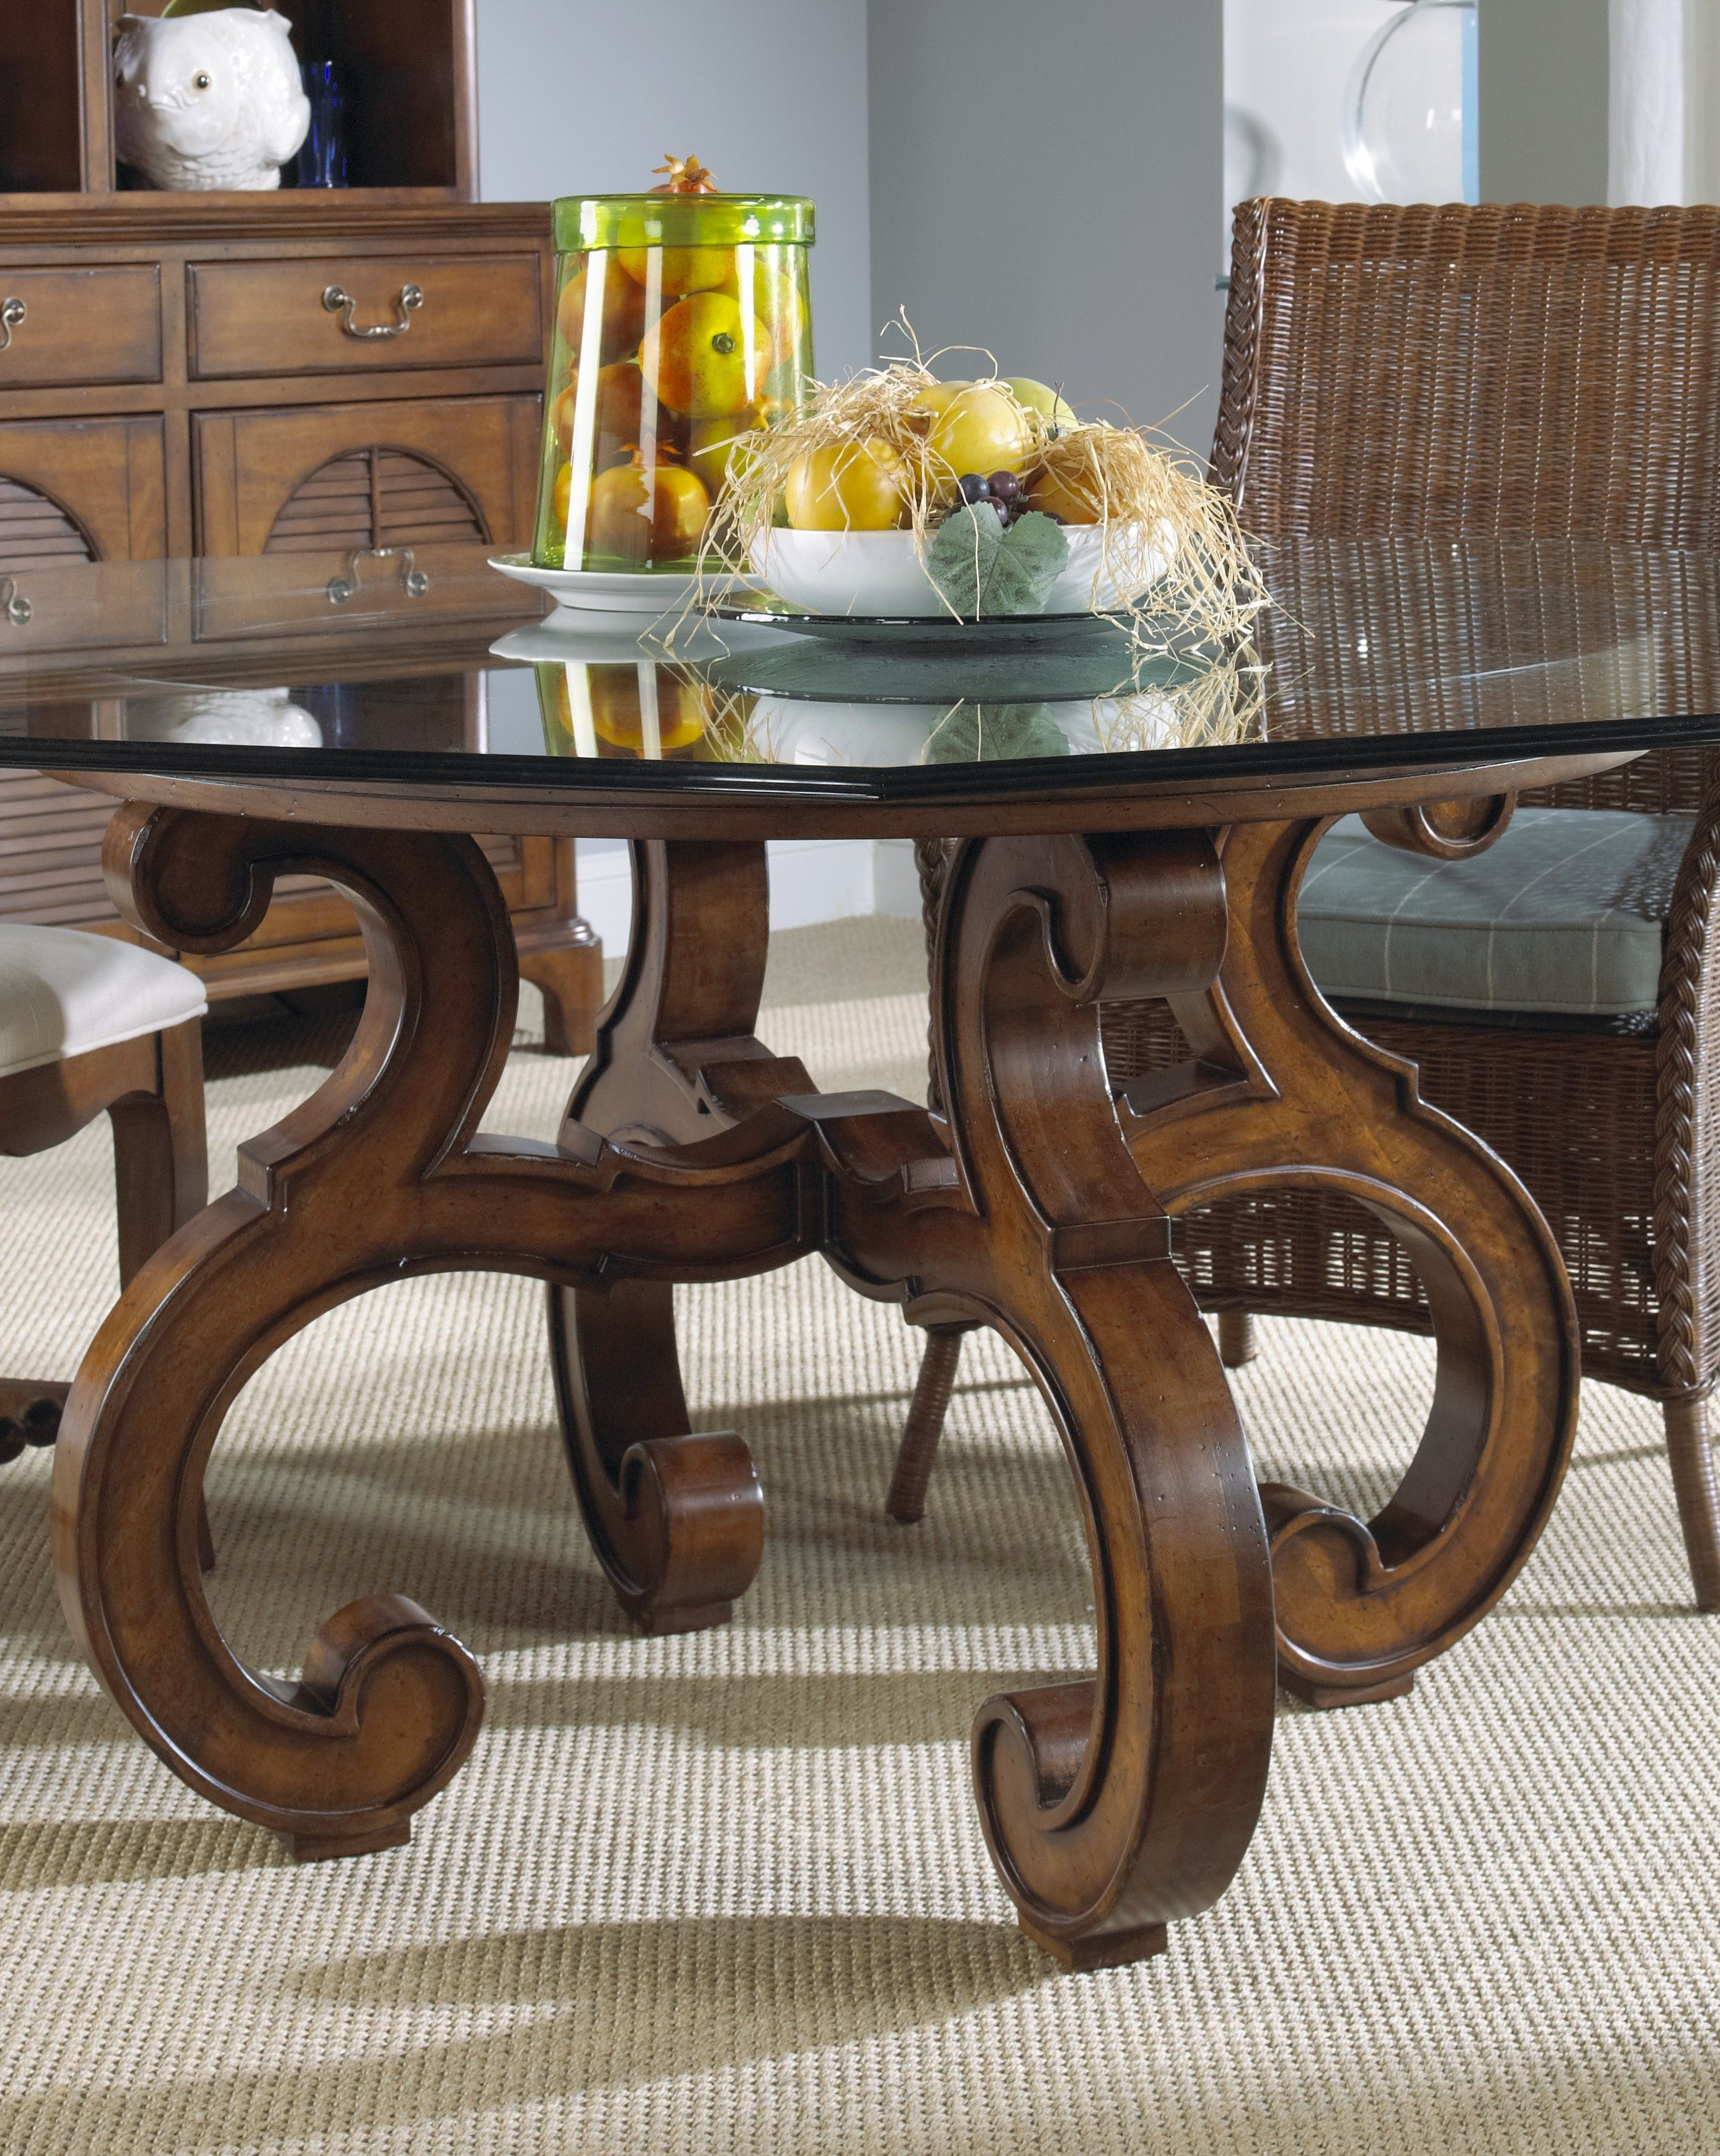 wooden dining table top designs on buy summer home dining room set by fine furniture design from www mmfurniture com glass round dining table glass top dining table glass dining table set glass round dining table glass top